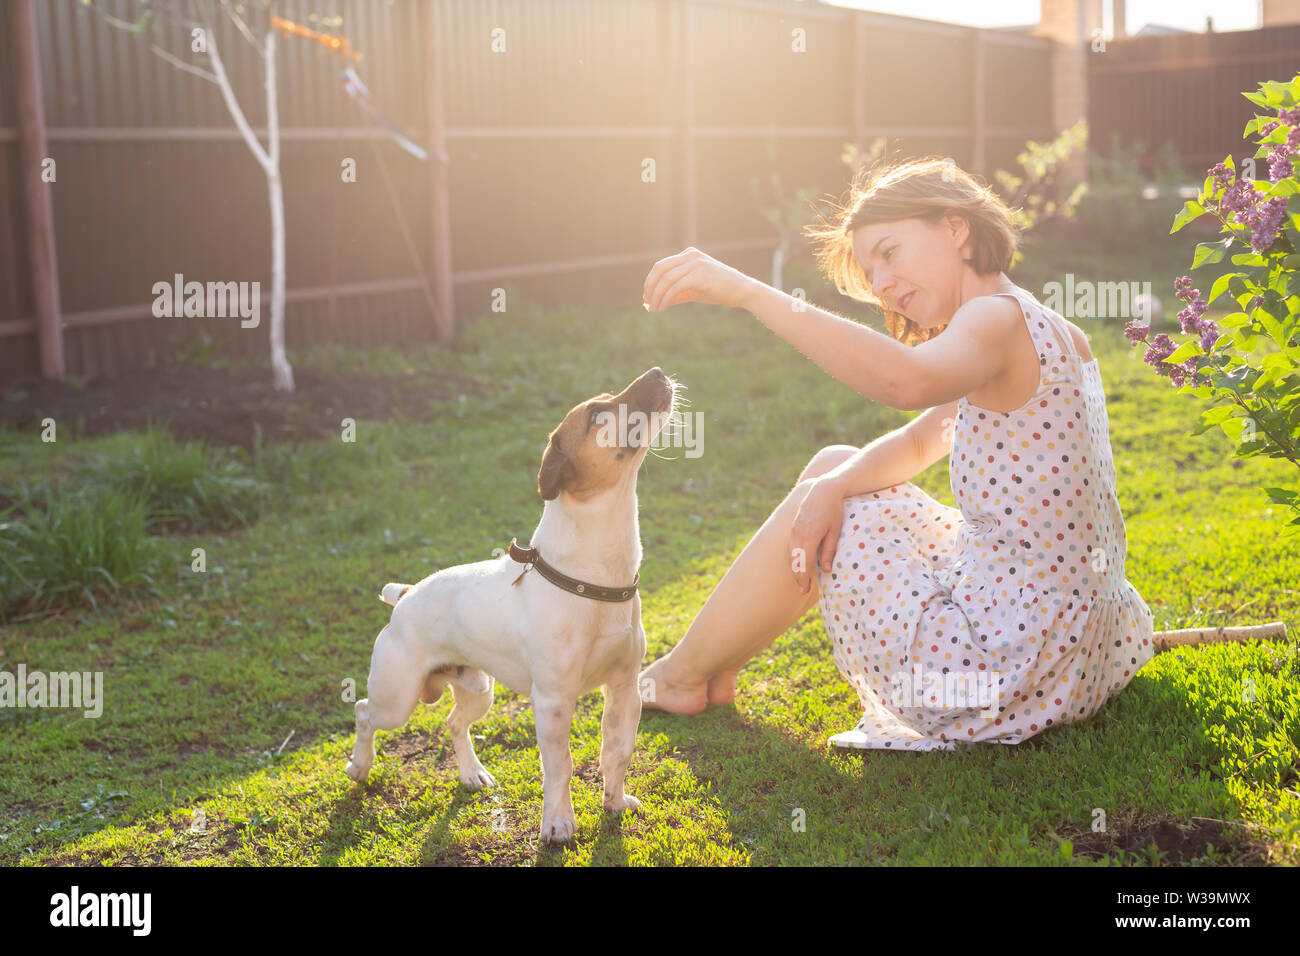 Positive cheerful woman playing with her beloved dog Jack Russell Terrier in the yard of her country house on a sunny summer day. Concept of love for - Stock Image